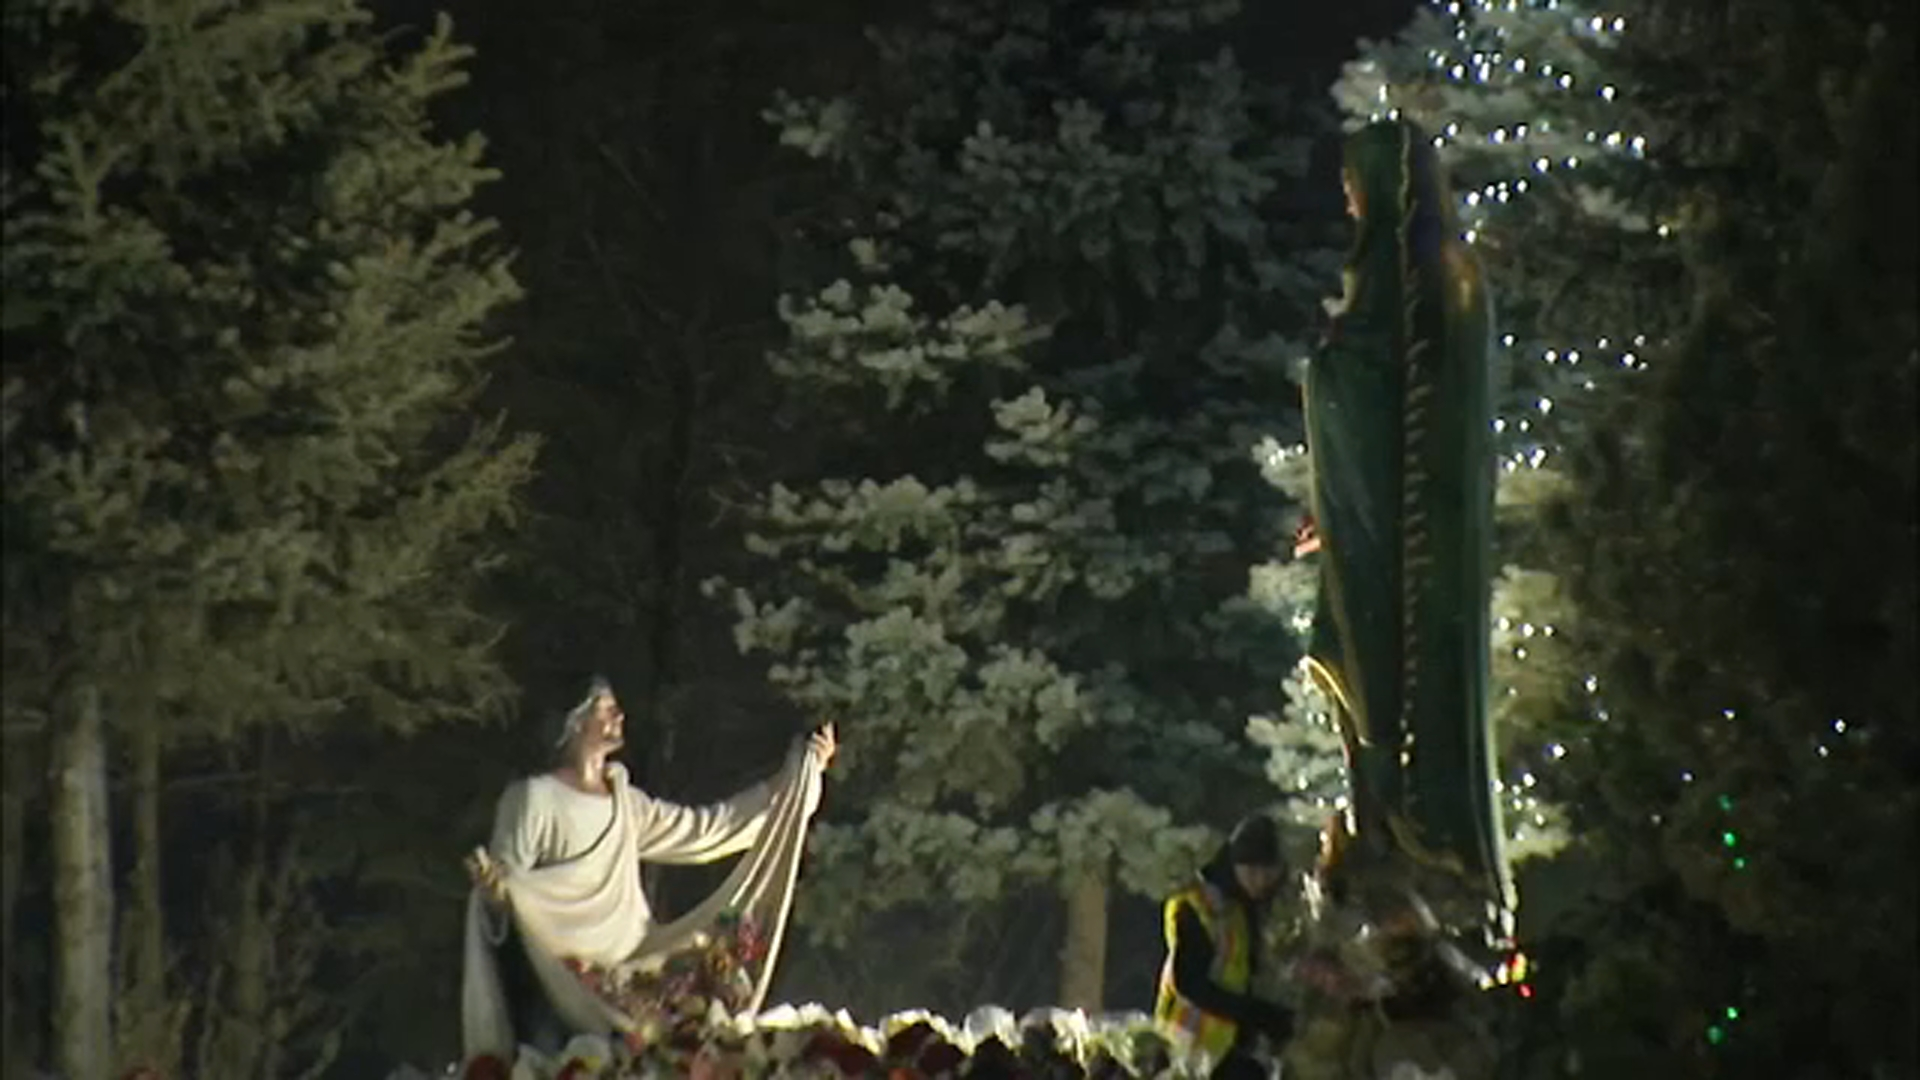 The centuries-long Catholic feast day that celebrates the Virgin Mary has begun in north suburban Des Plaines